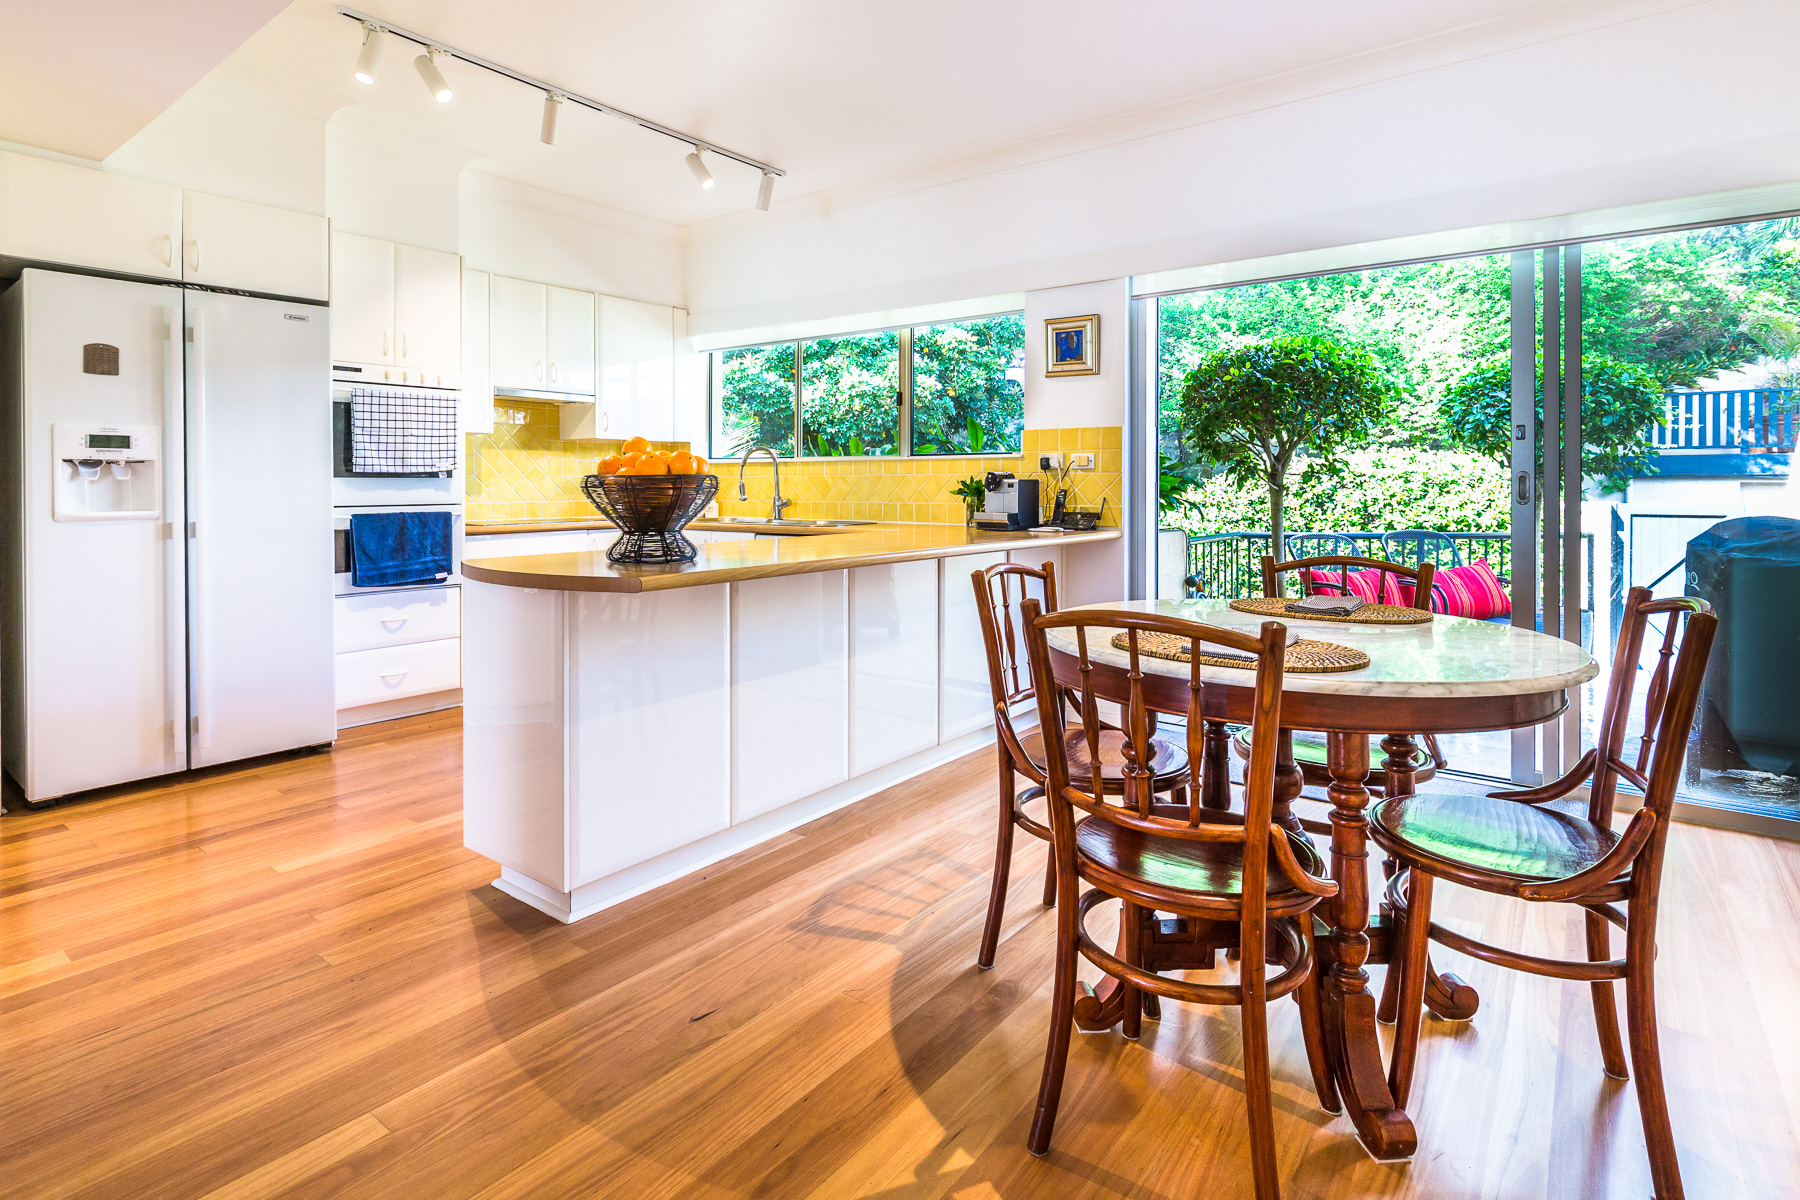 Spacious kitchen and breakfast area.